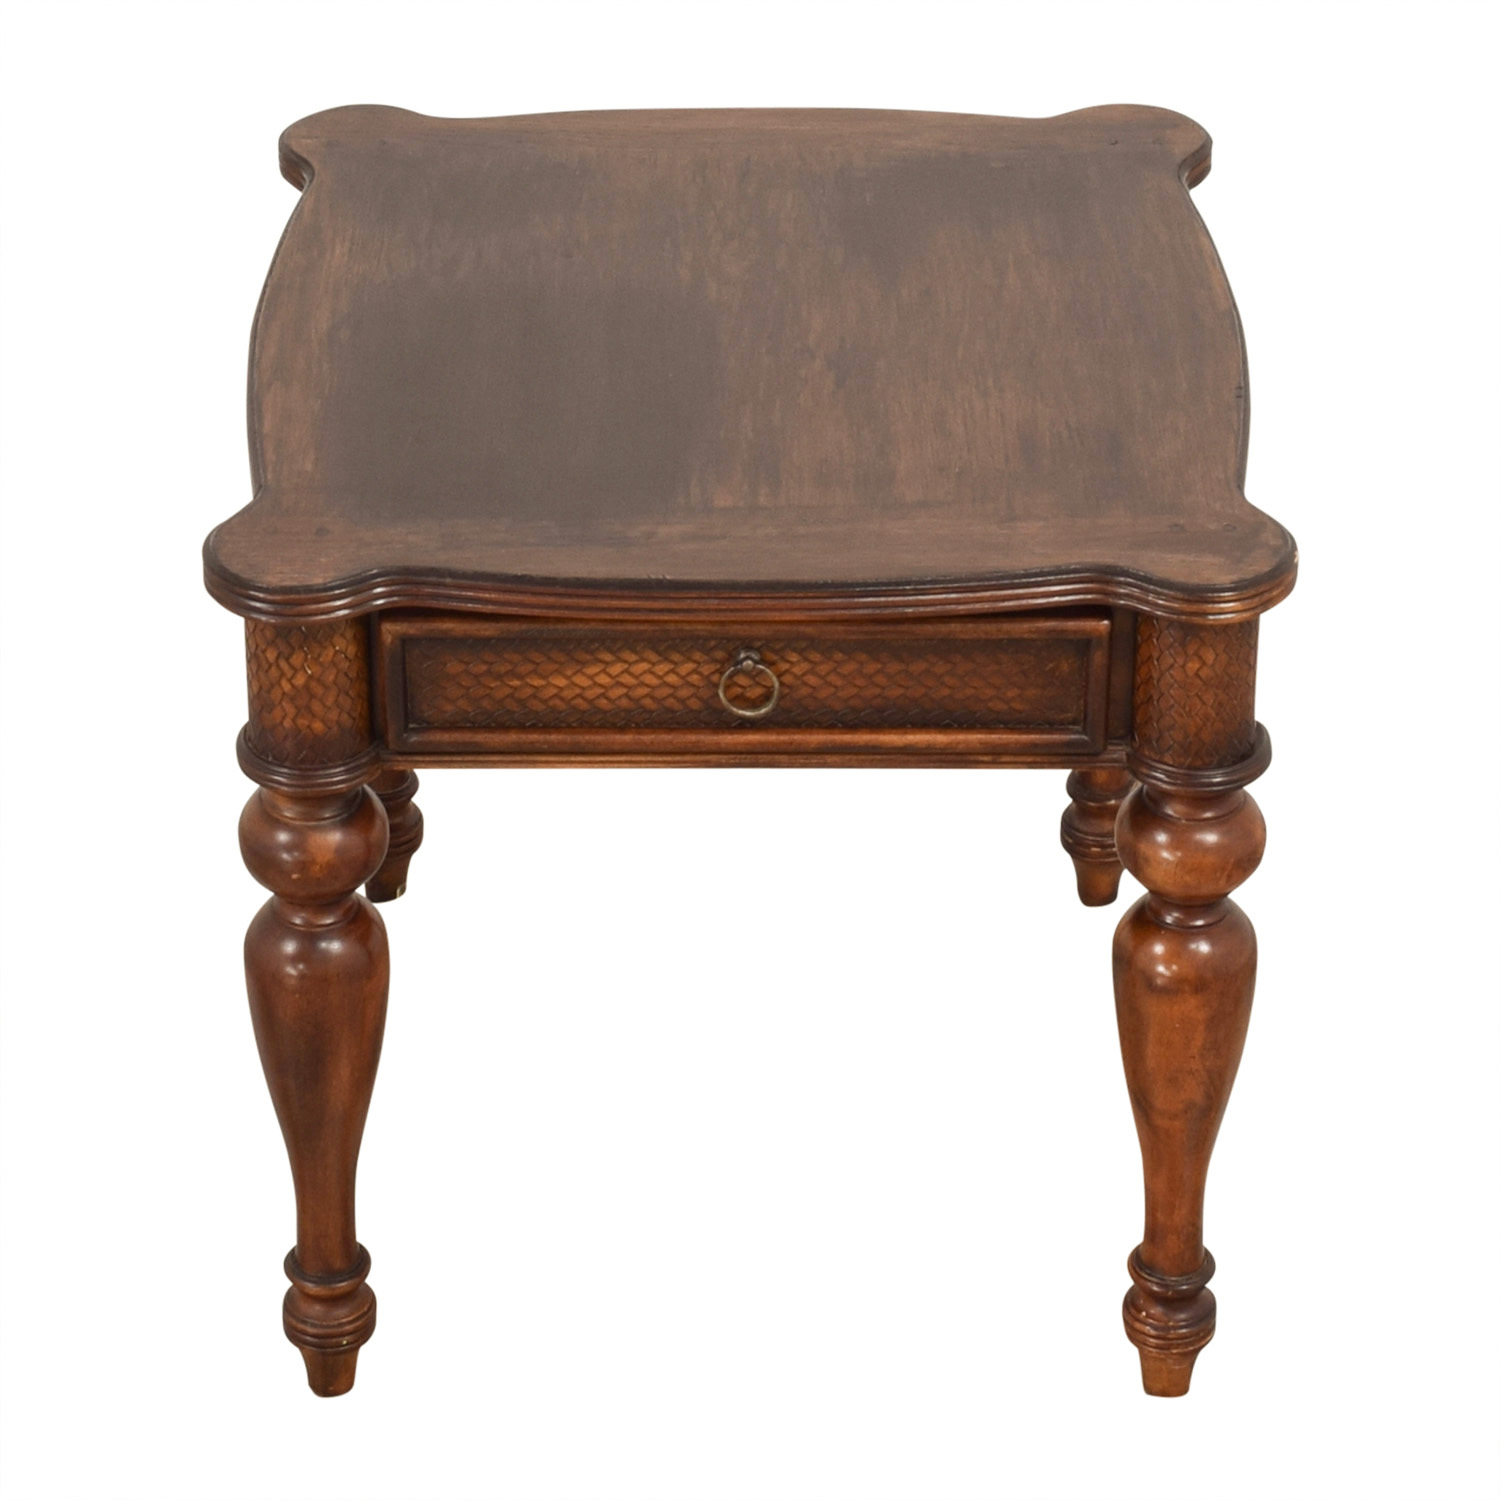 Living Room Side Table with Drawer / End Tables